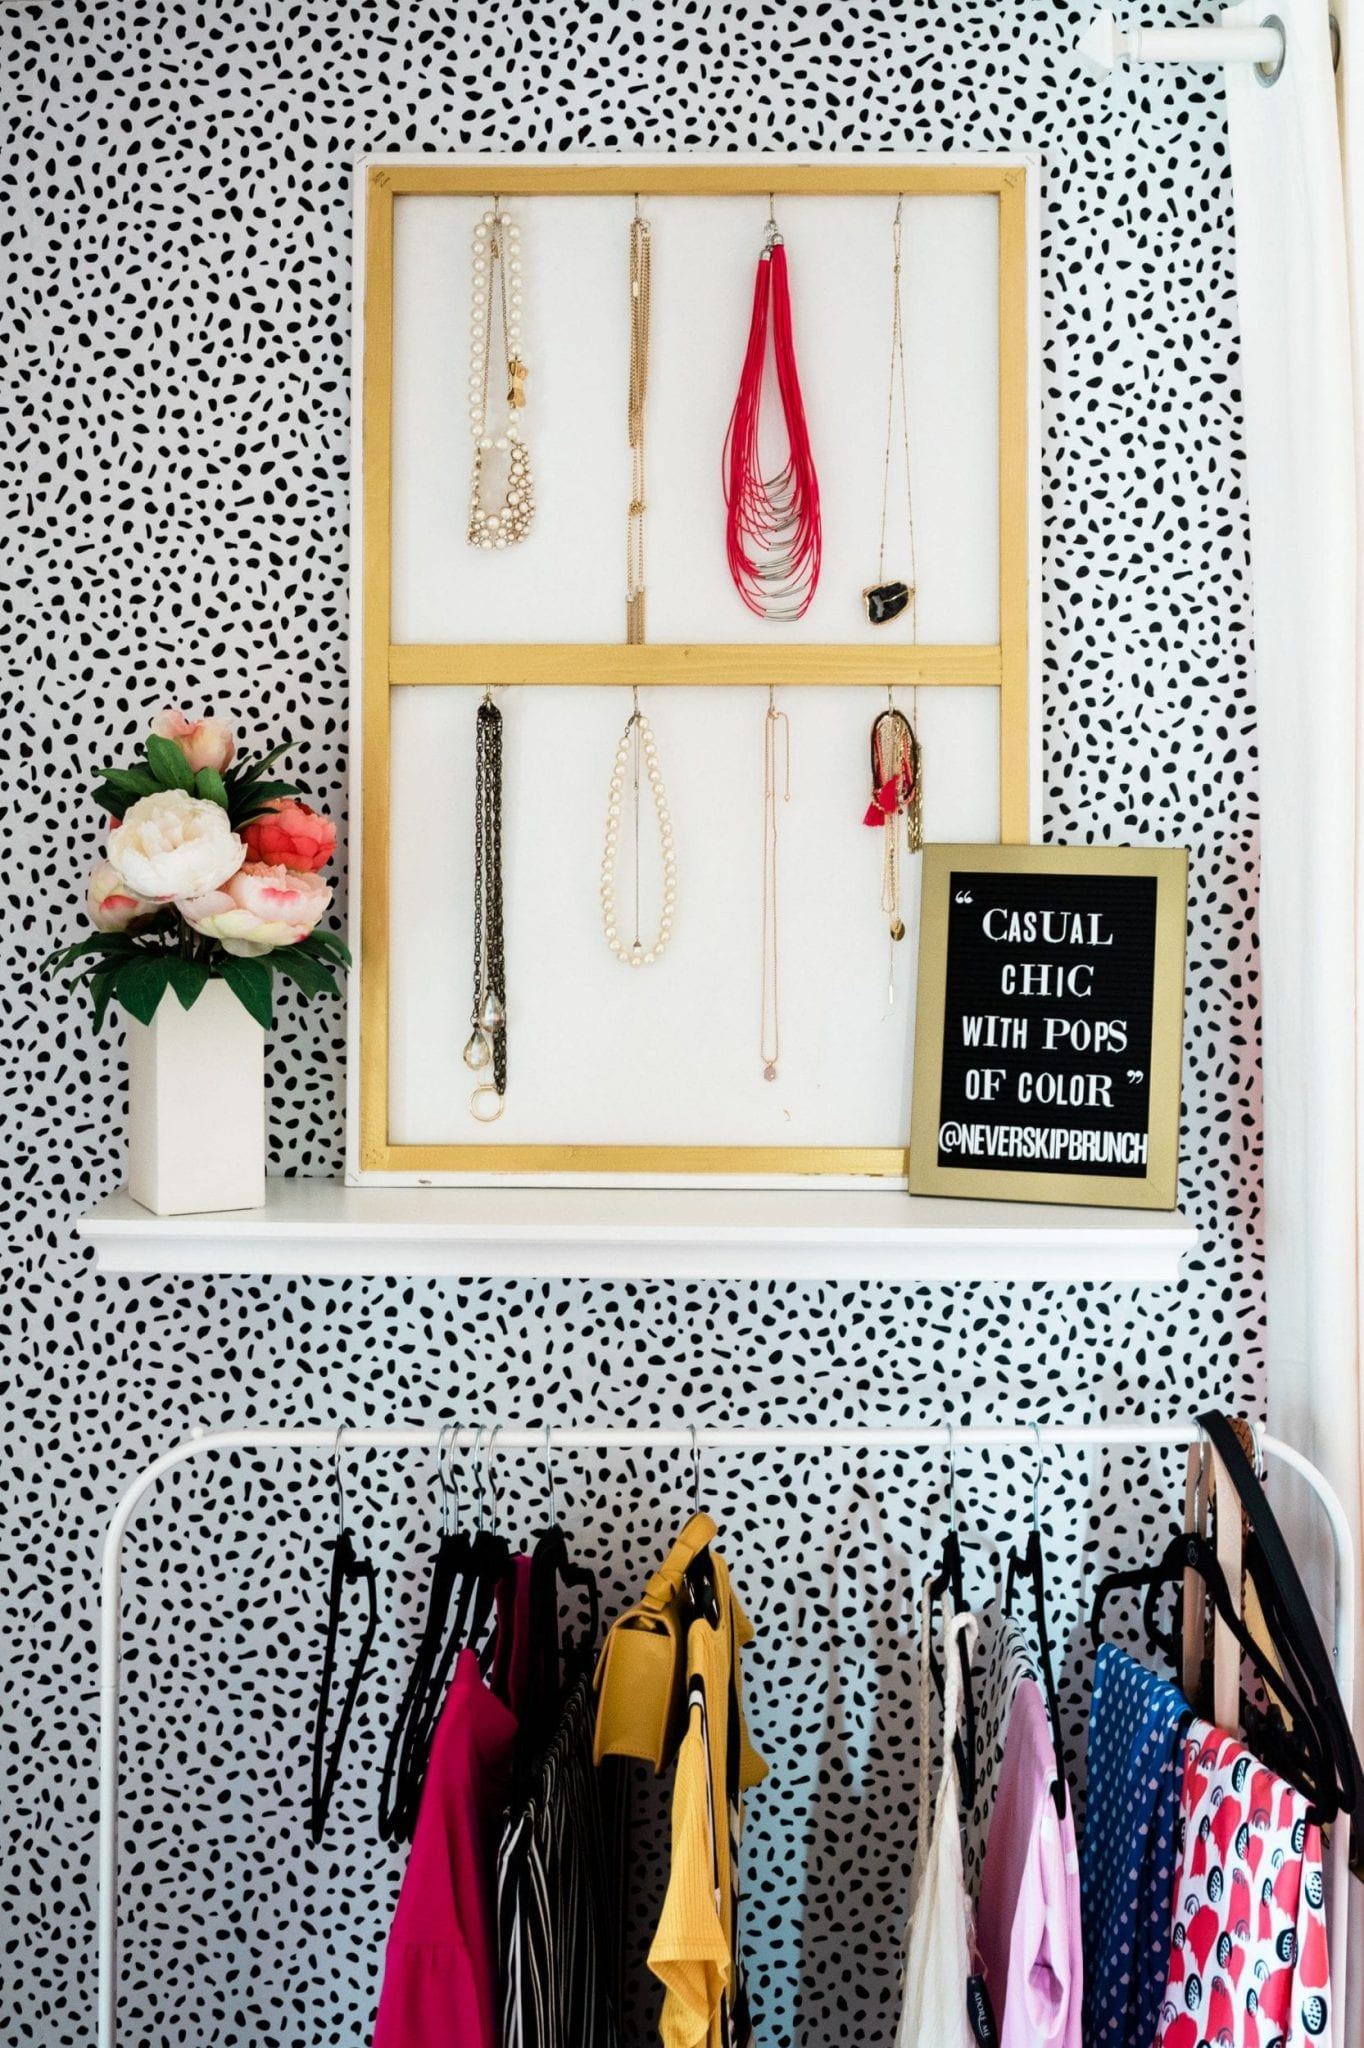 easy diy jewelry holder for wall | diy jewelry holder wall | necklace holder diy wall | Never Skip Brunch by Cara Newhart #diy #home #neverskipbrunch